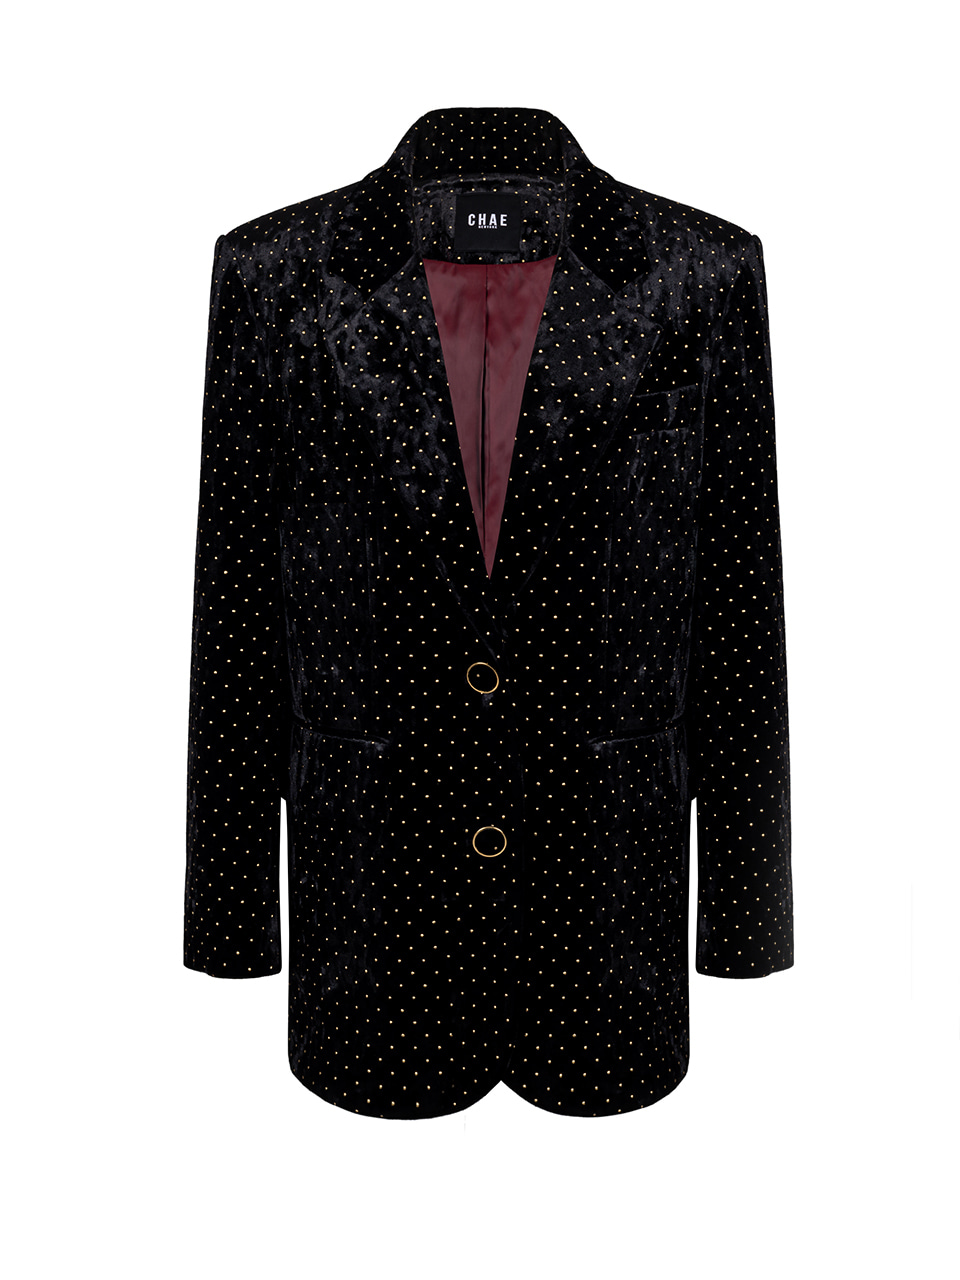 New to classic tailored jacket [Black Velevet]